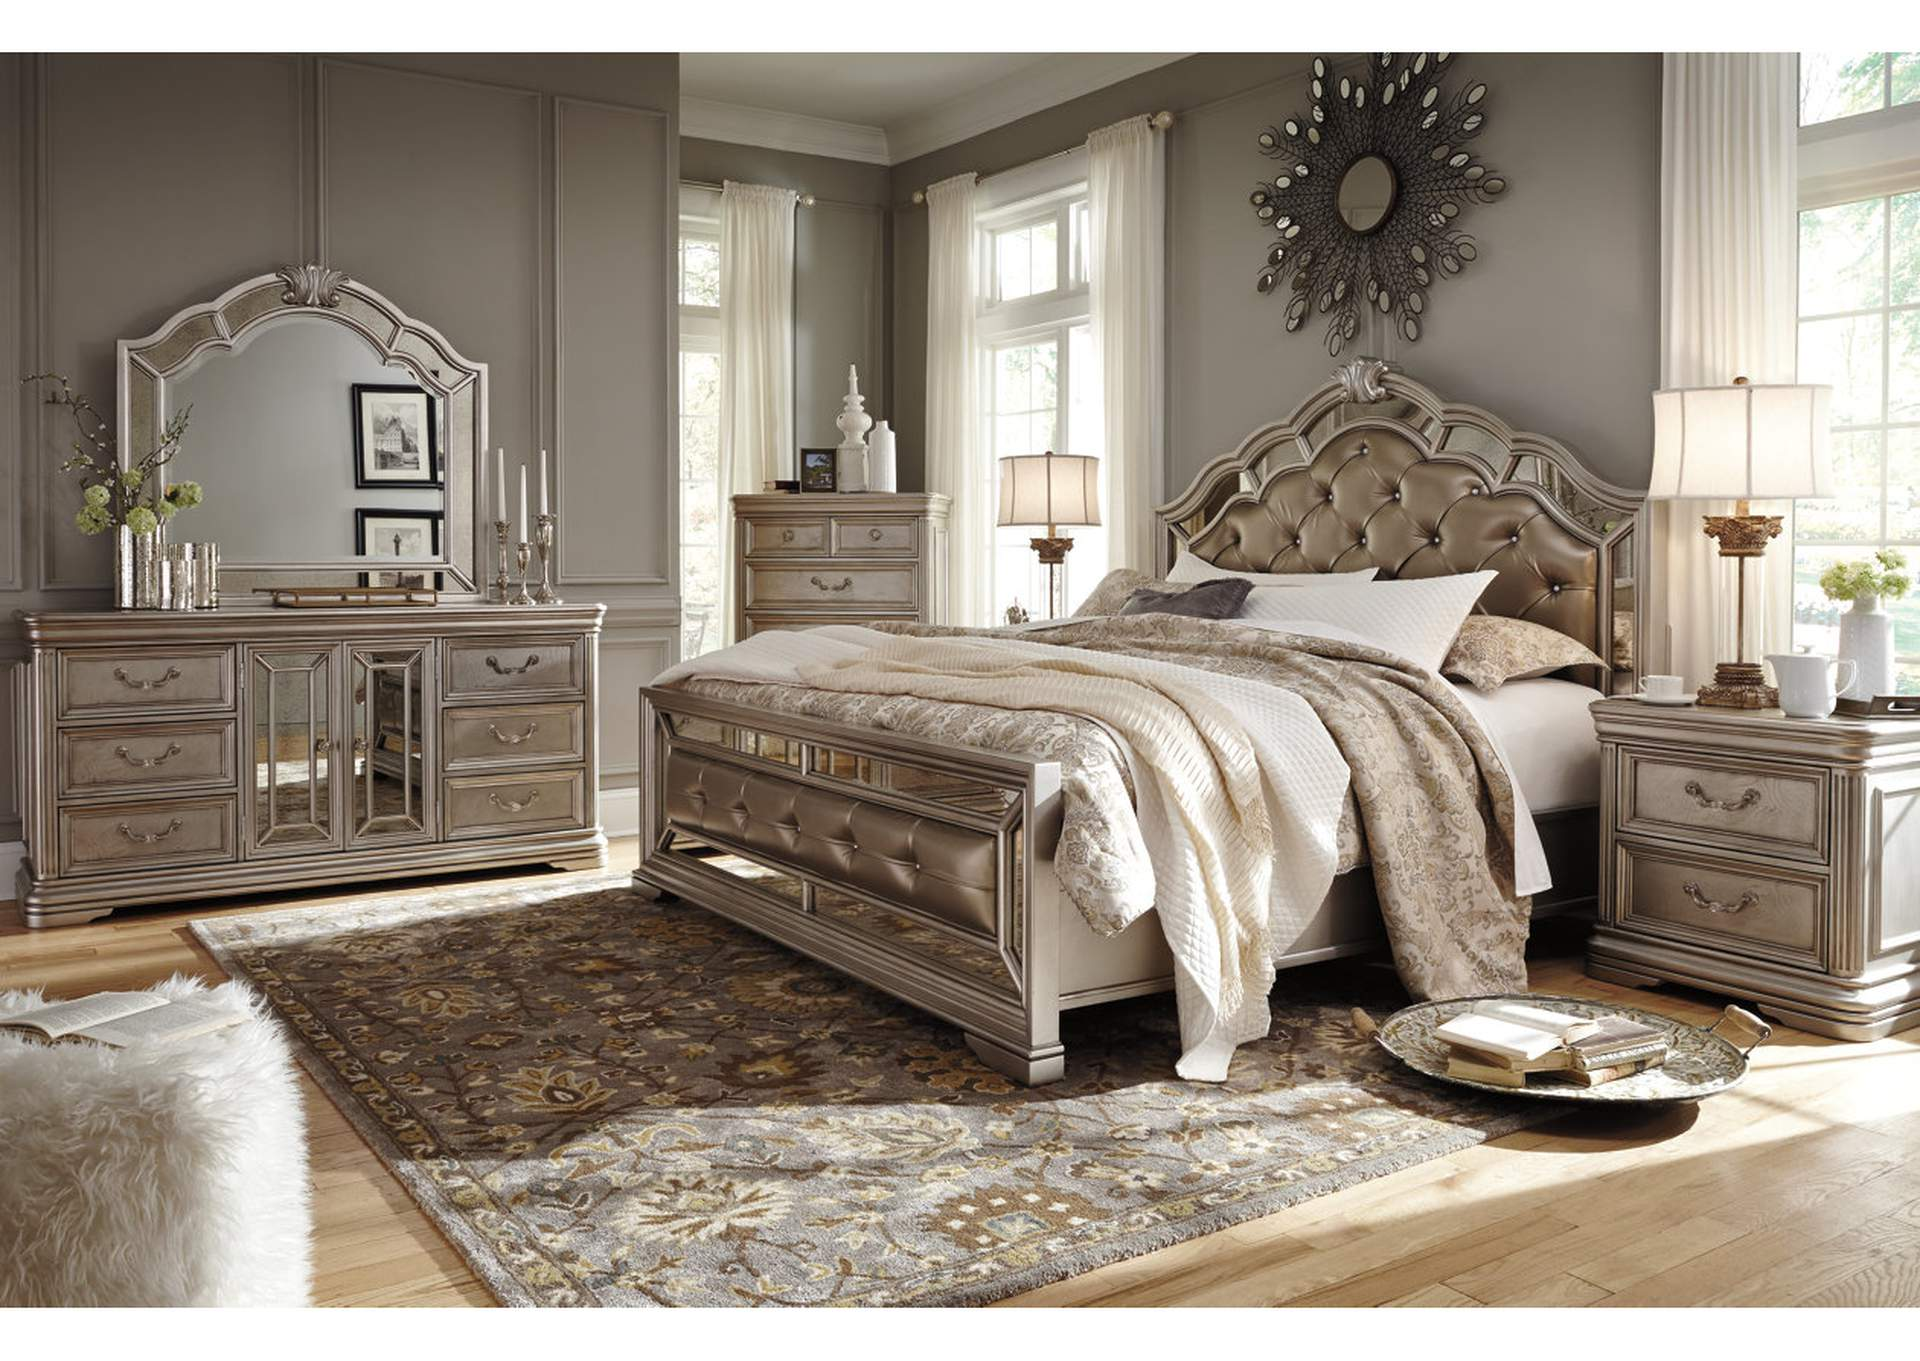 Birlanny Silver Queen Upholstered Bed w/Dresser & Mirror,Signature Design by Ashley